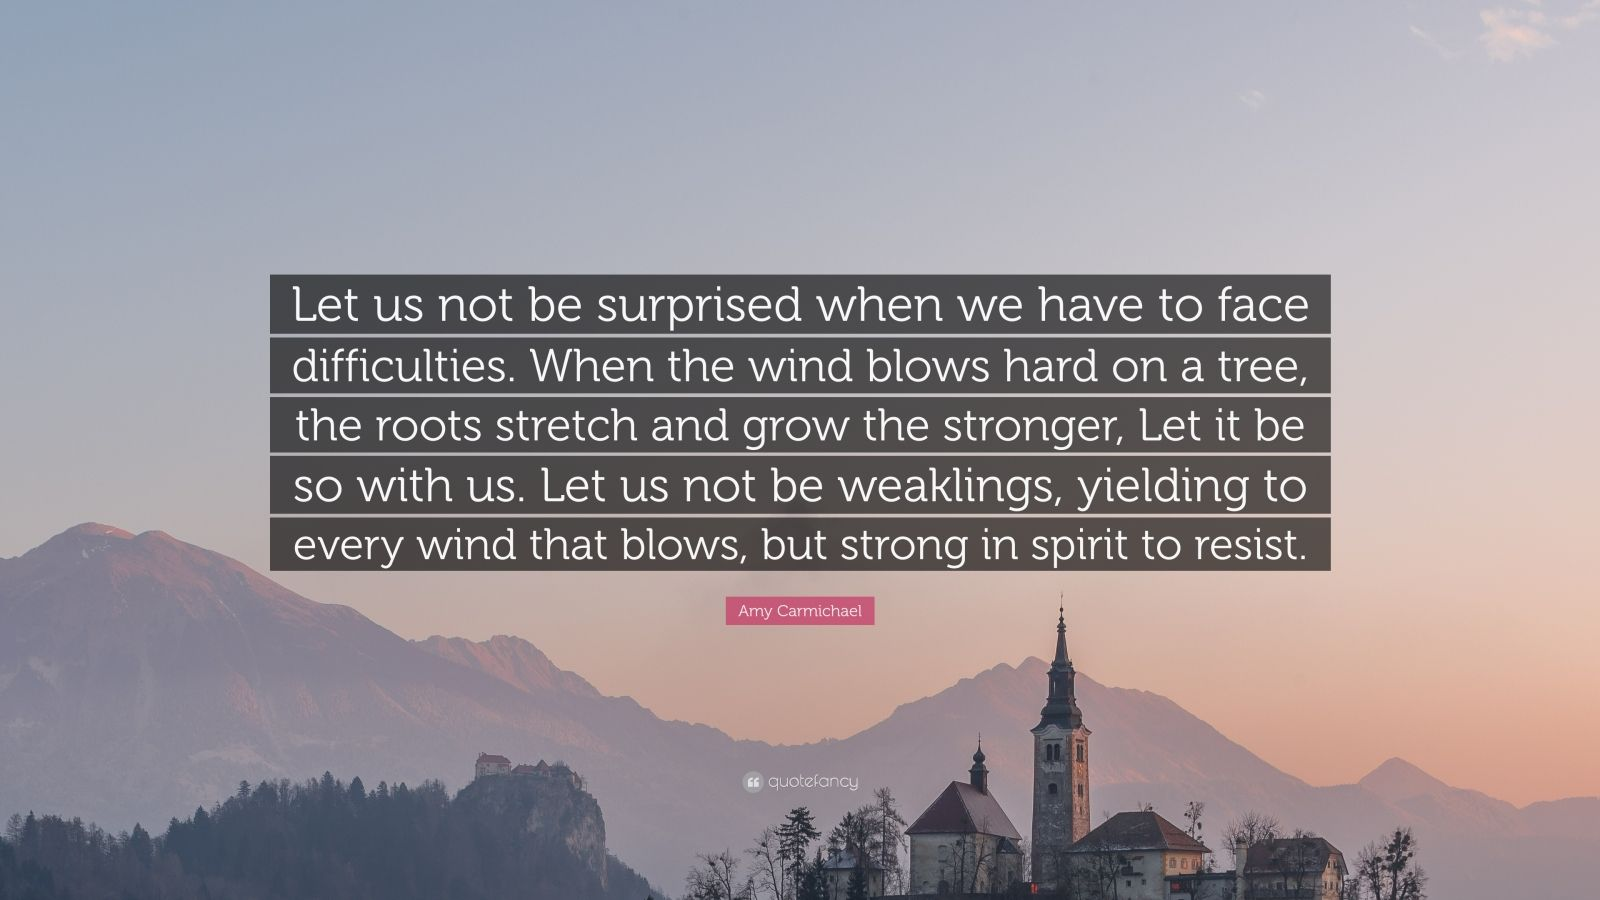 Spirit Science Quotes Wallpapers Amy Carmichael Quote Let Us Not Be Surprised When We